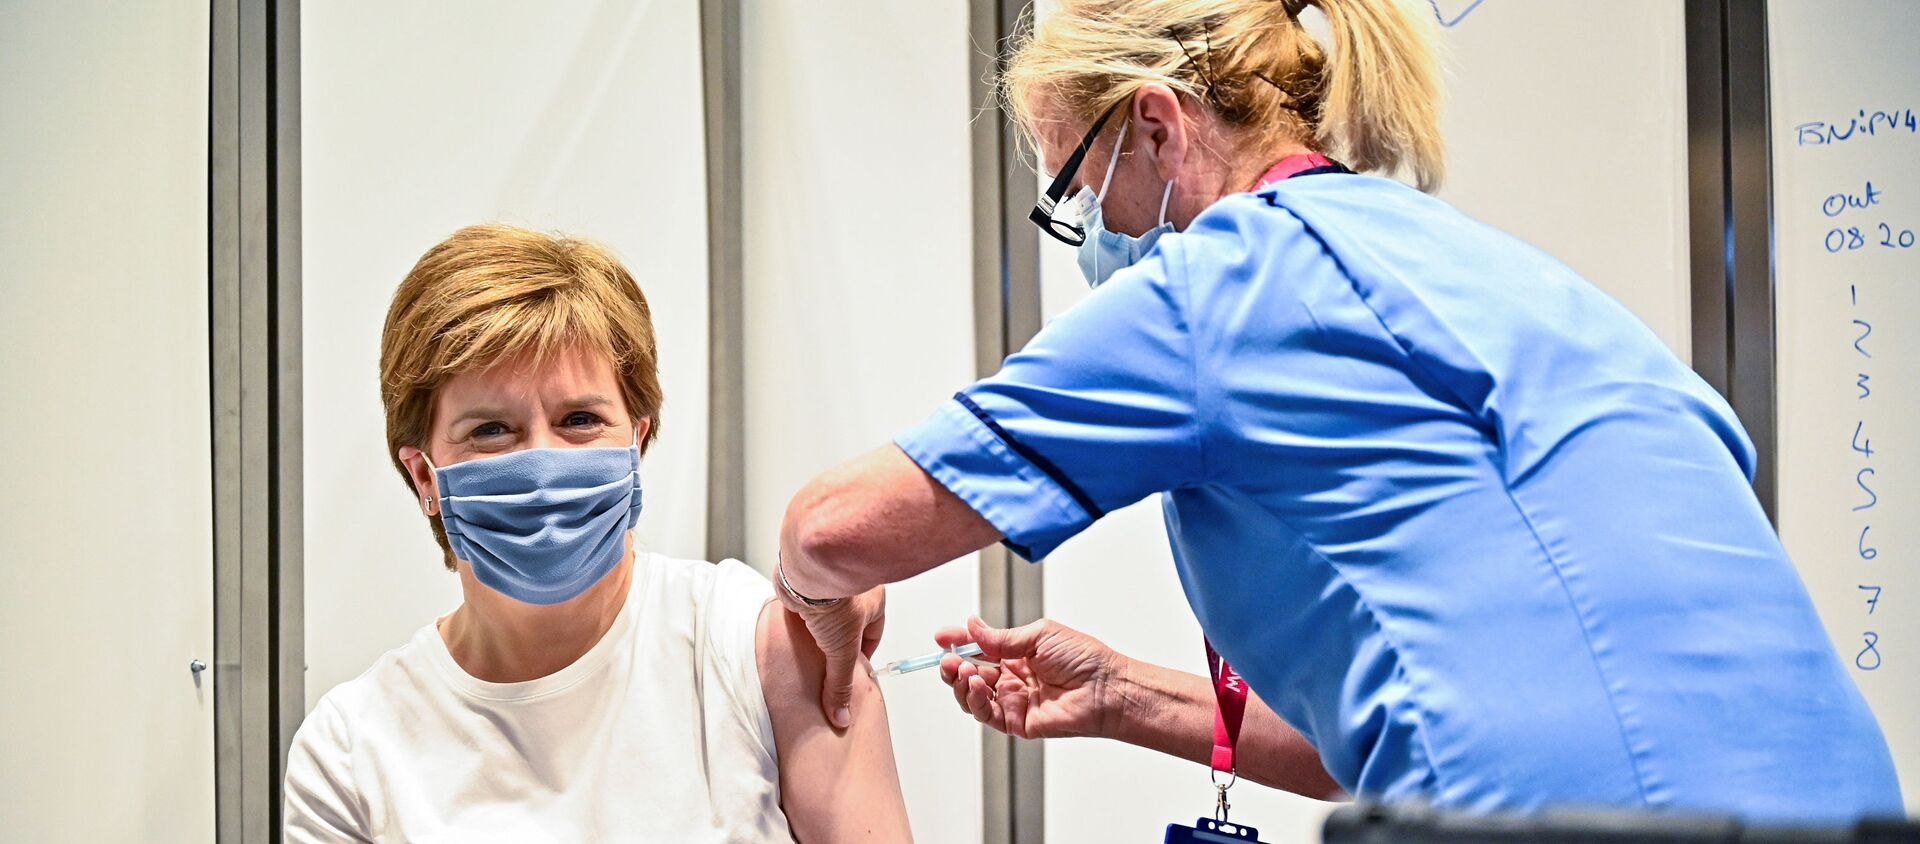 Scottish First Minister Nicola Sturgeon receives her second dose of the COVID-19 vaccine in Glasgow - Sputnik International, 1920